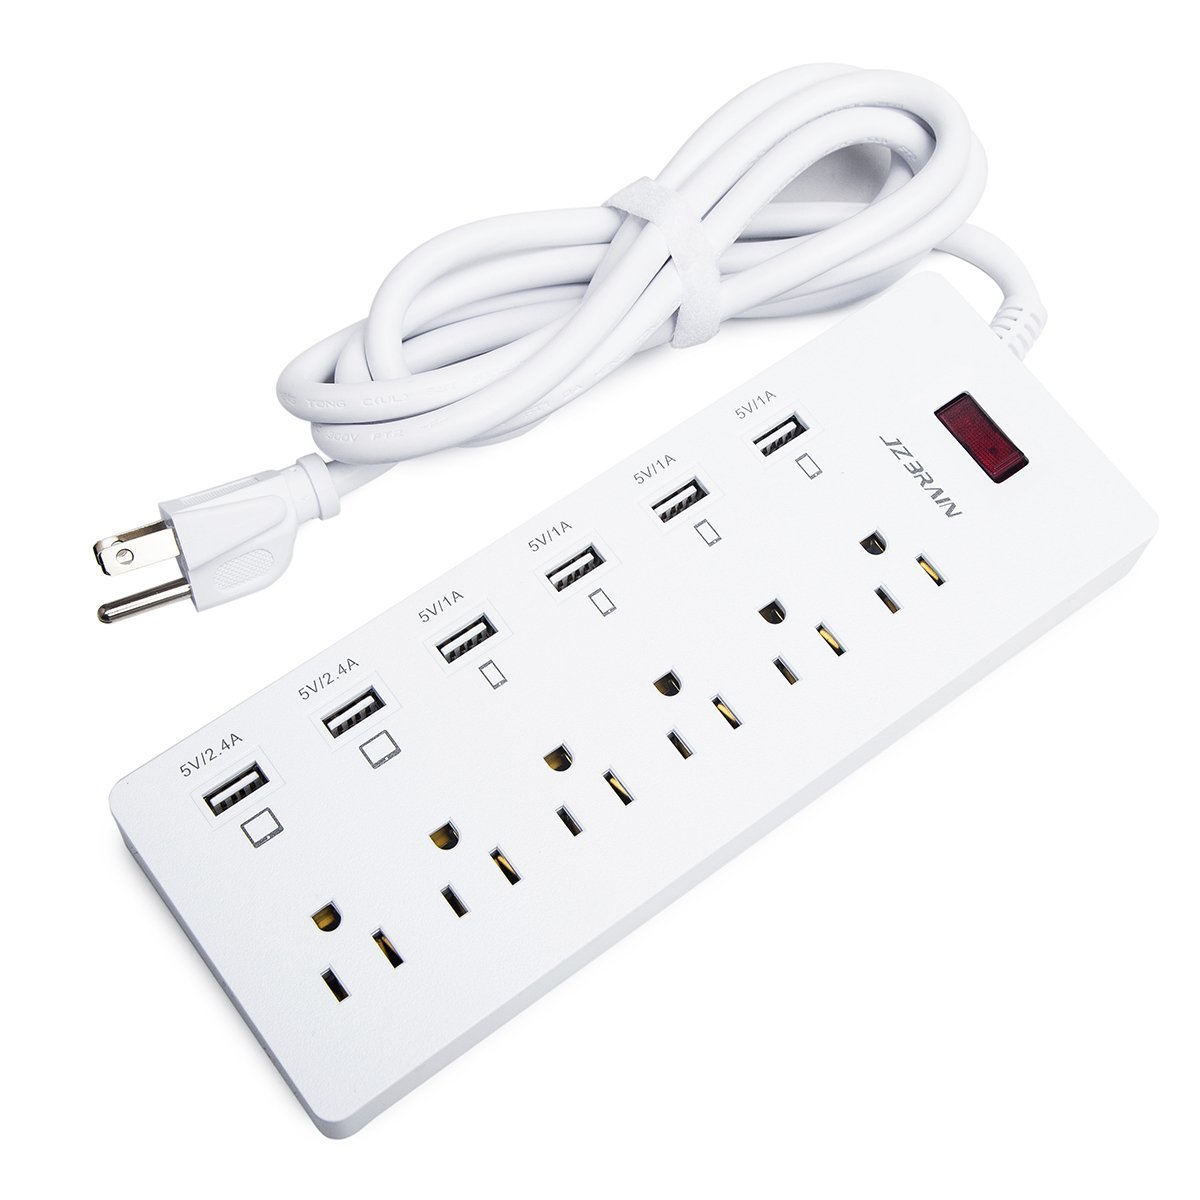 JZBRAIN 6 Way Outlet 6 USB Ports Power Strip Extension ...